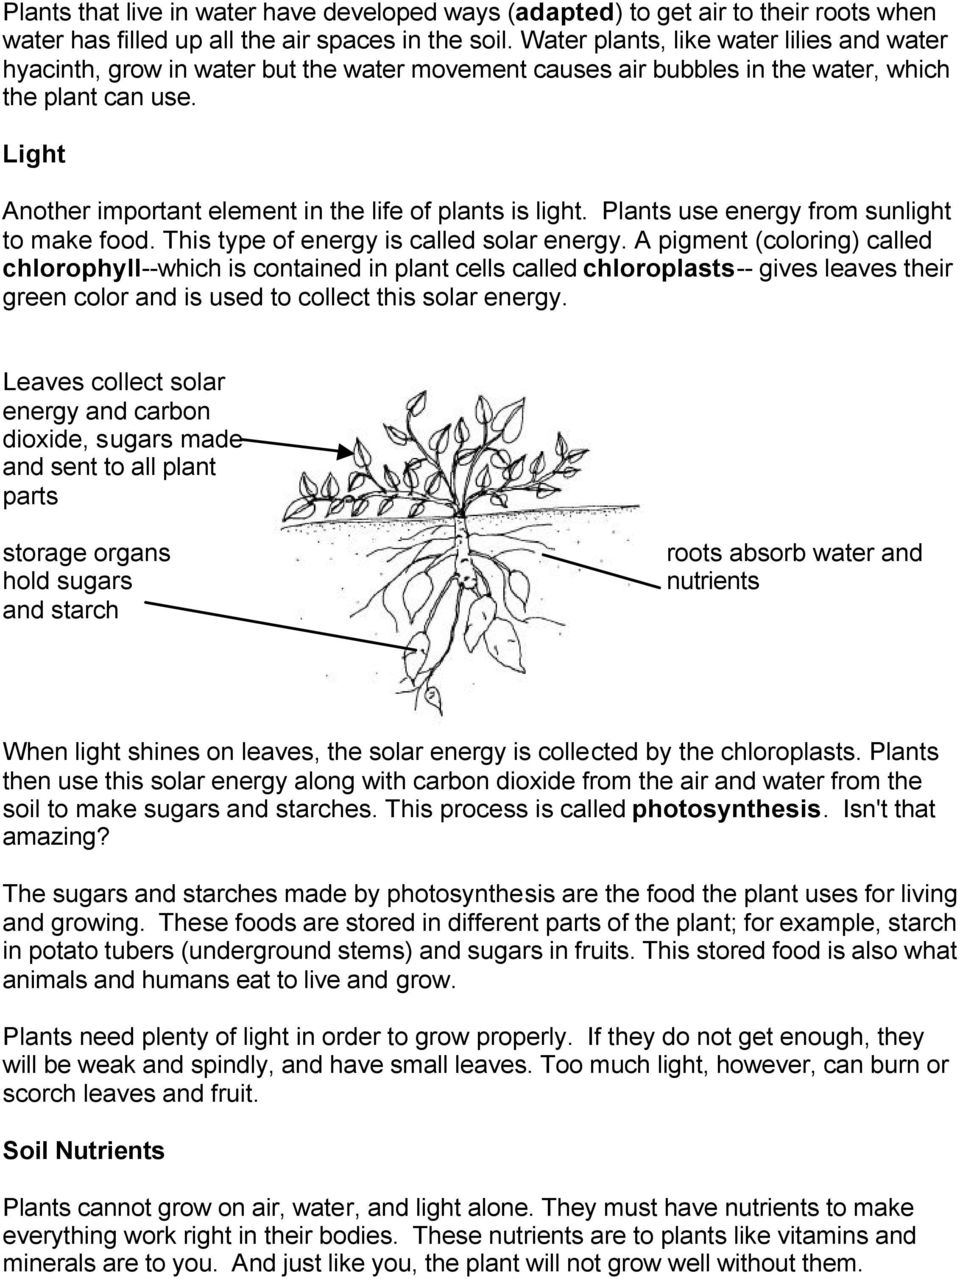 Light Another important element in the life of plants is light. Plants use energy from sunlight to make food. This type of energy is called solar energy.